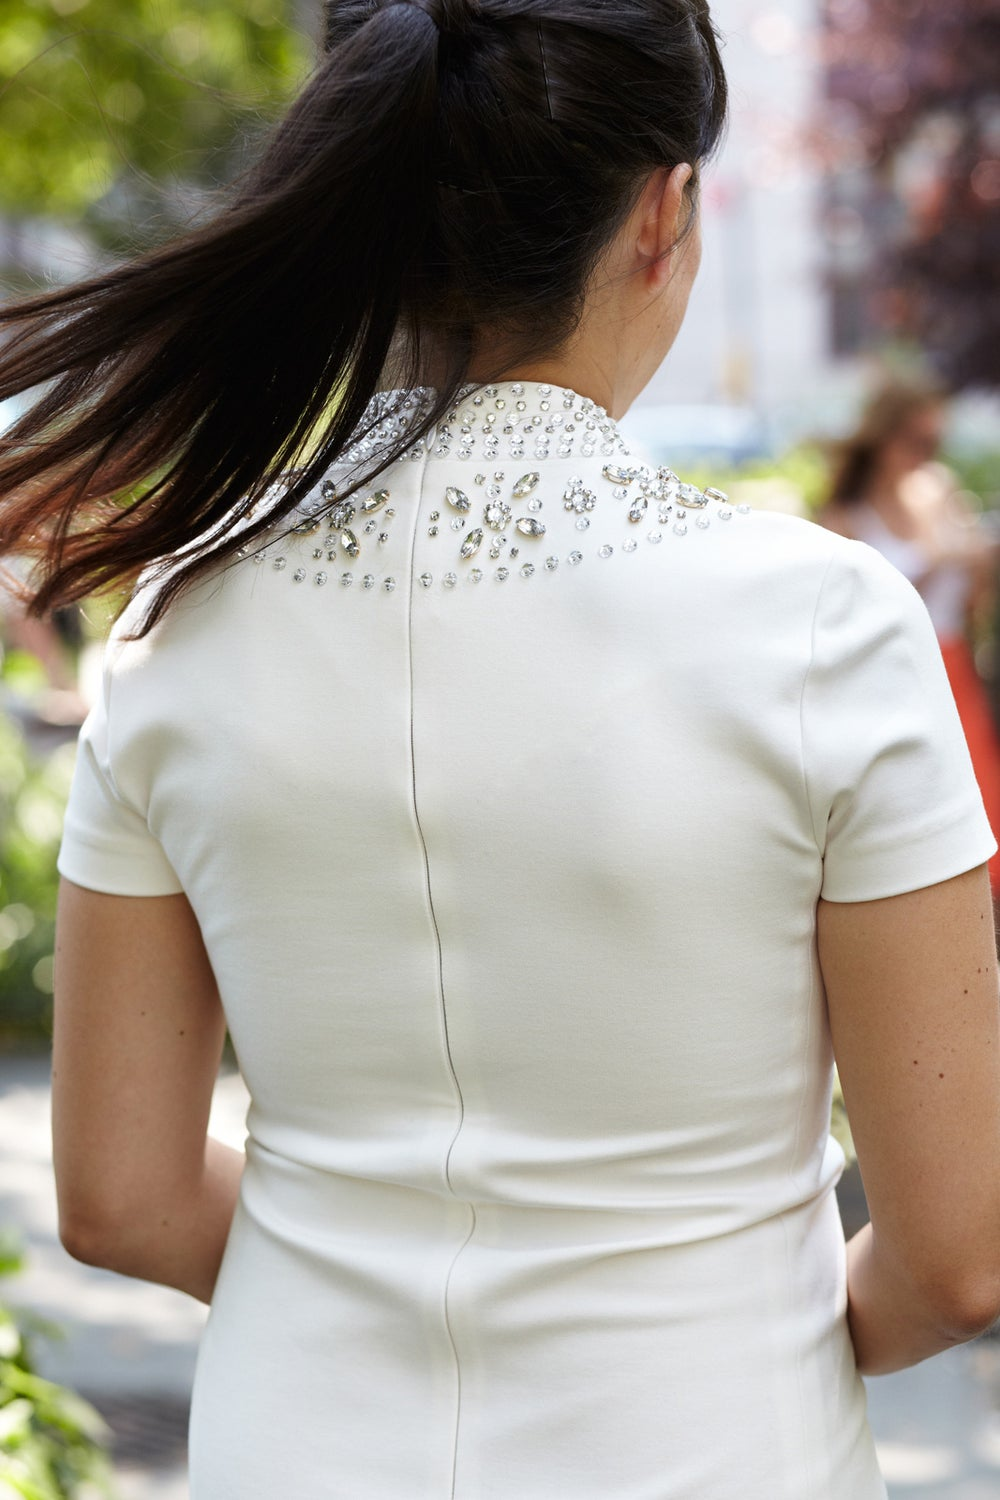 ...in addition to the sparkles on the back of her dress...